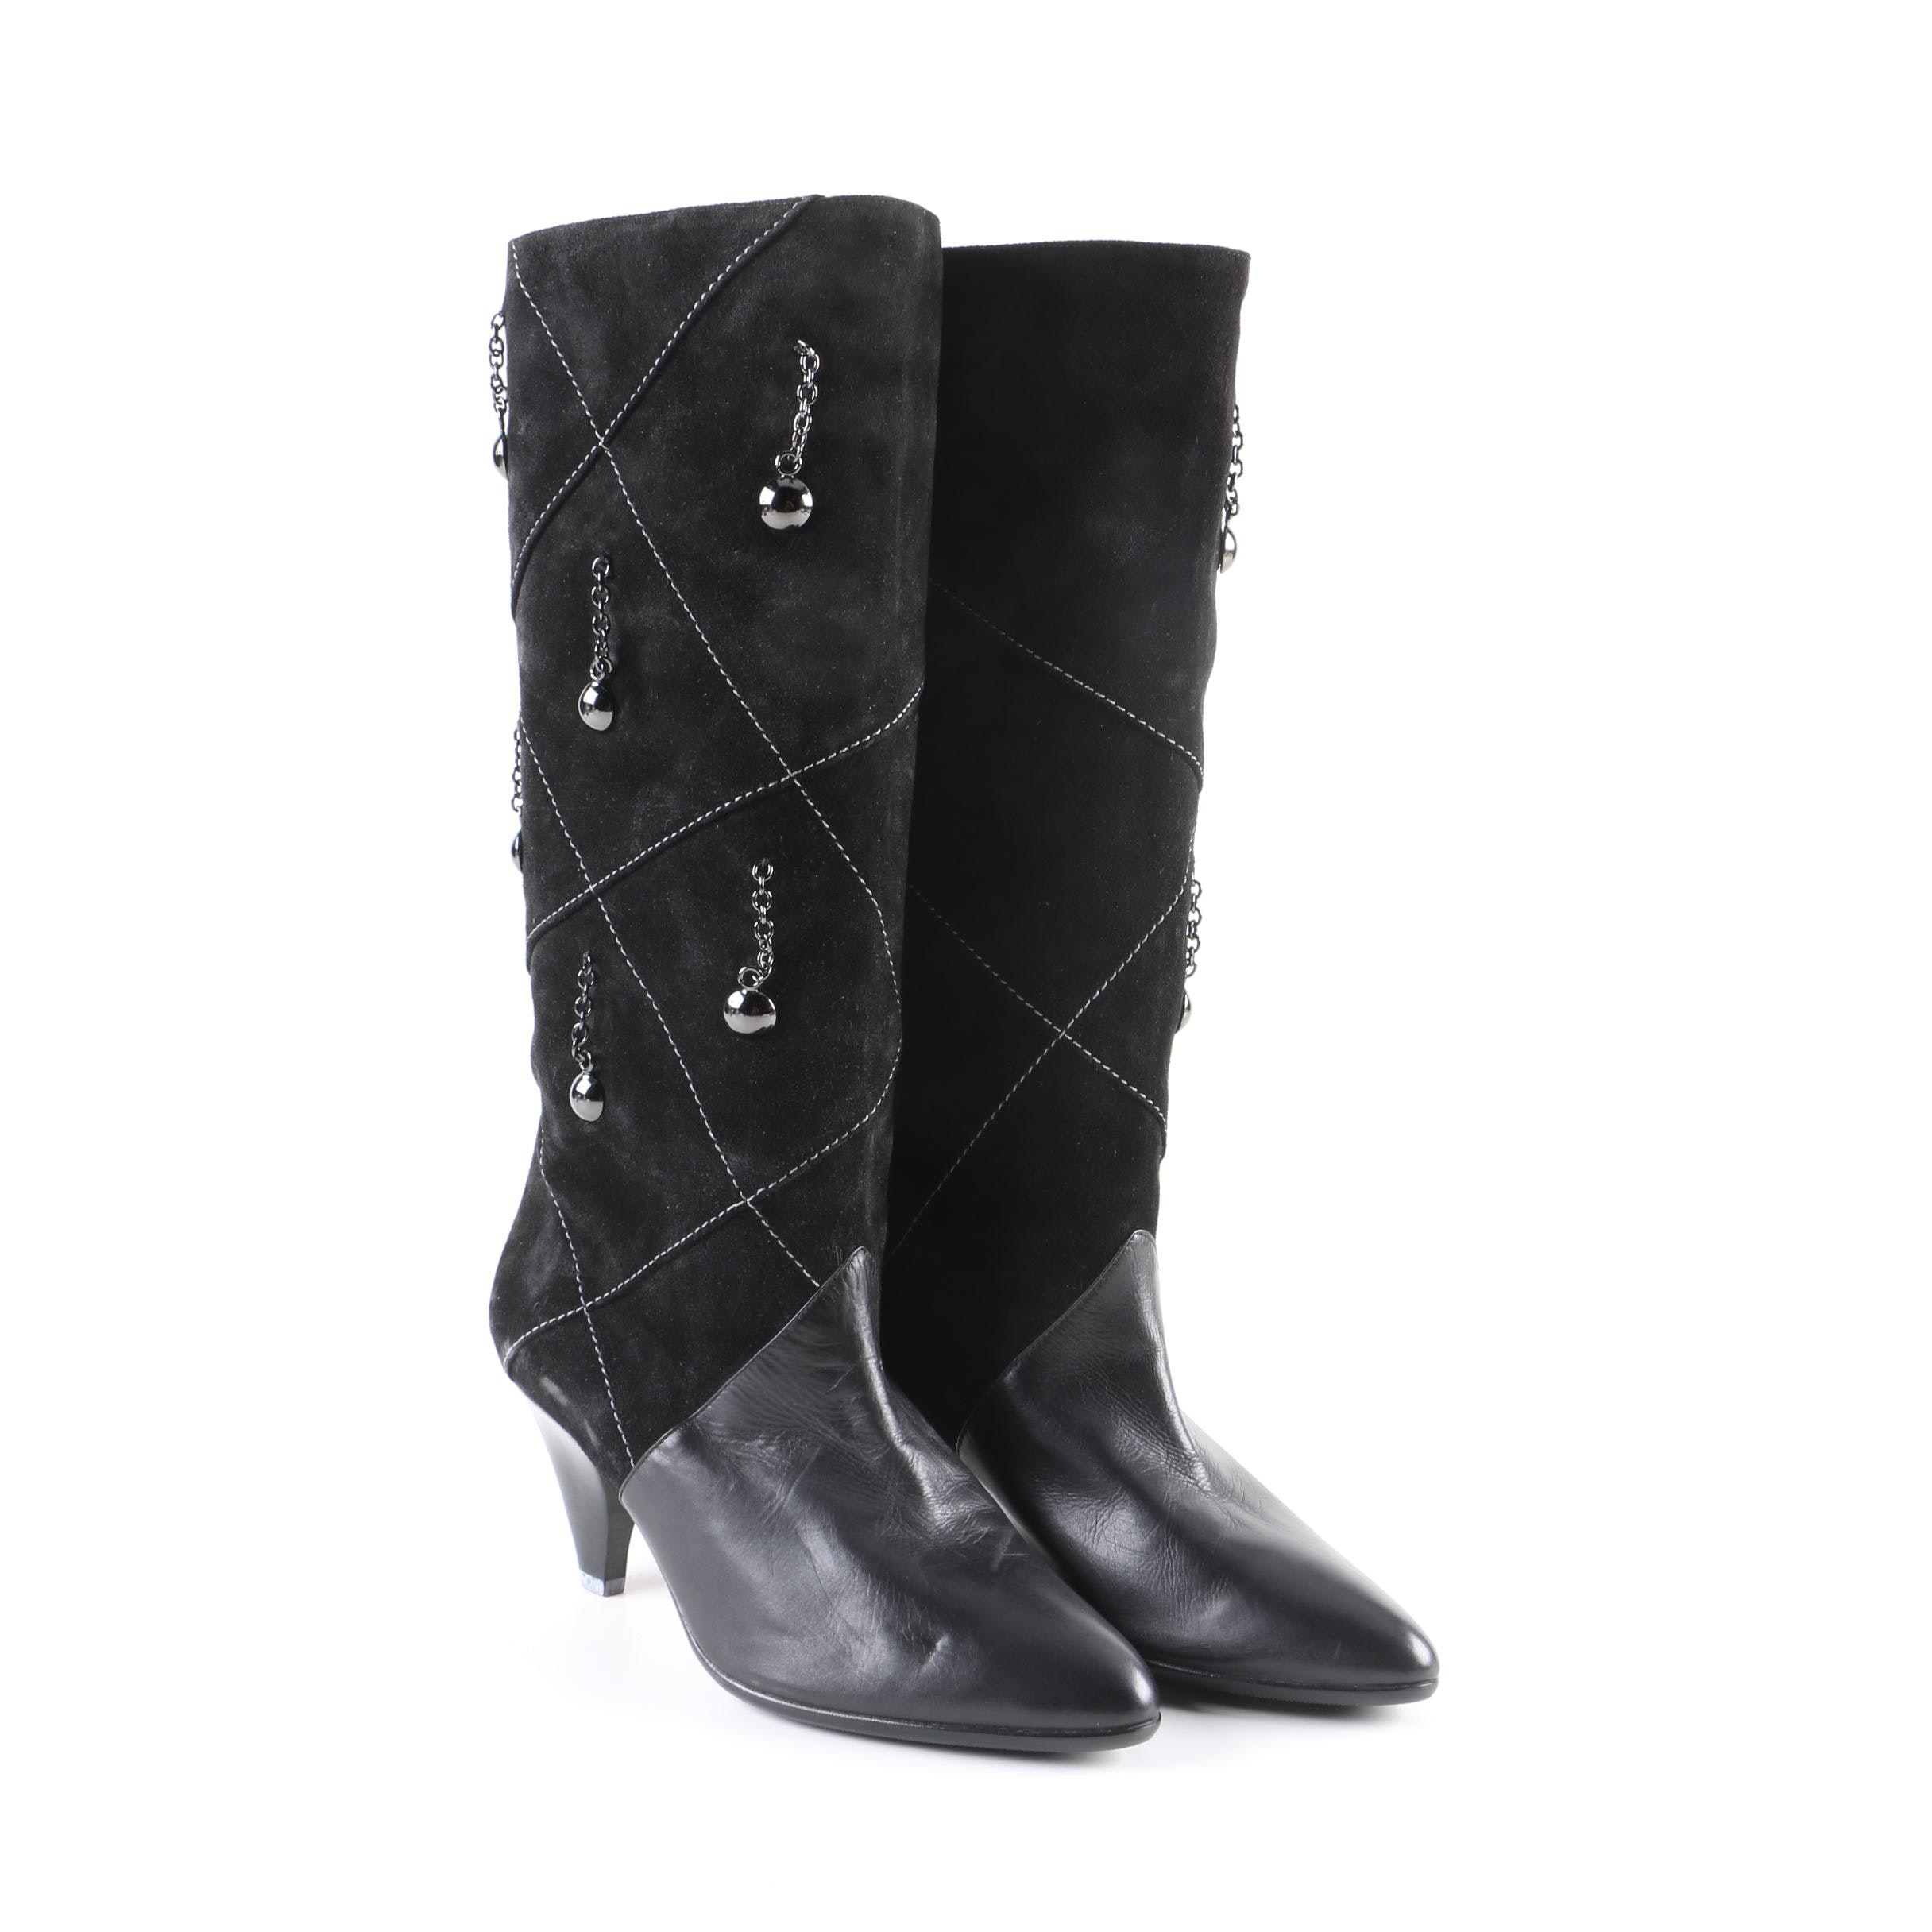 Women's Neiman Marcus Black Suede and Leather Rodo Boots